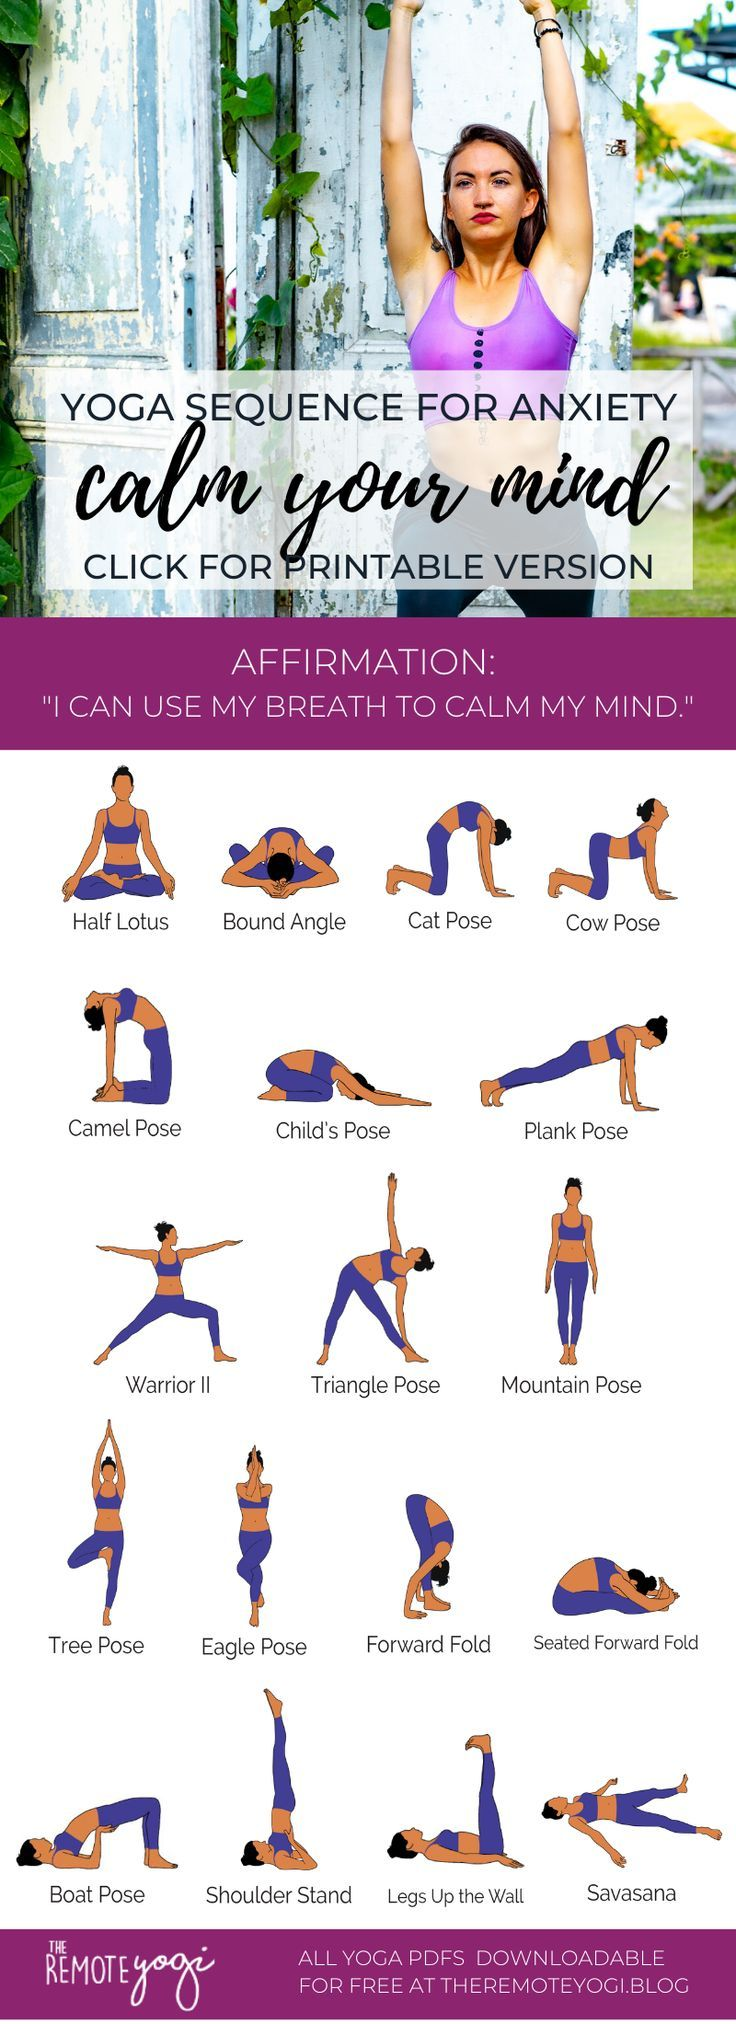 Yoga Poses for Anxiety-Free Anxiety Reducing Yoga PDF